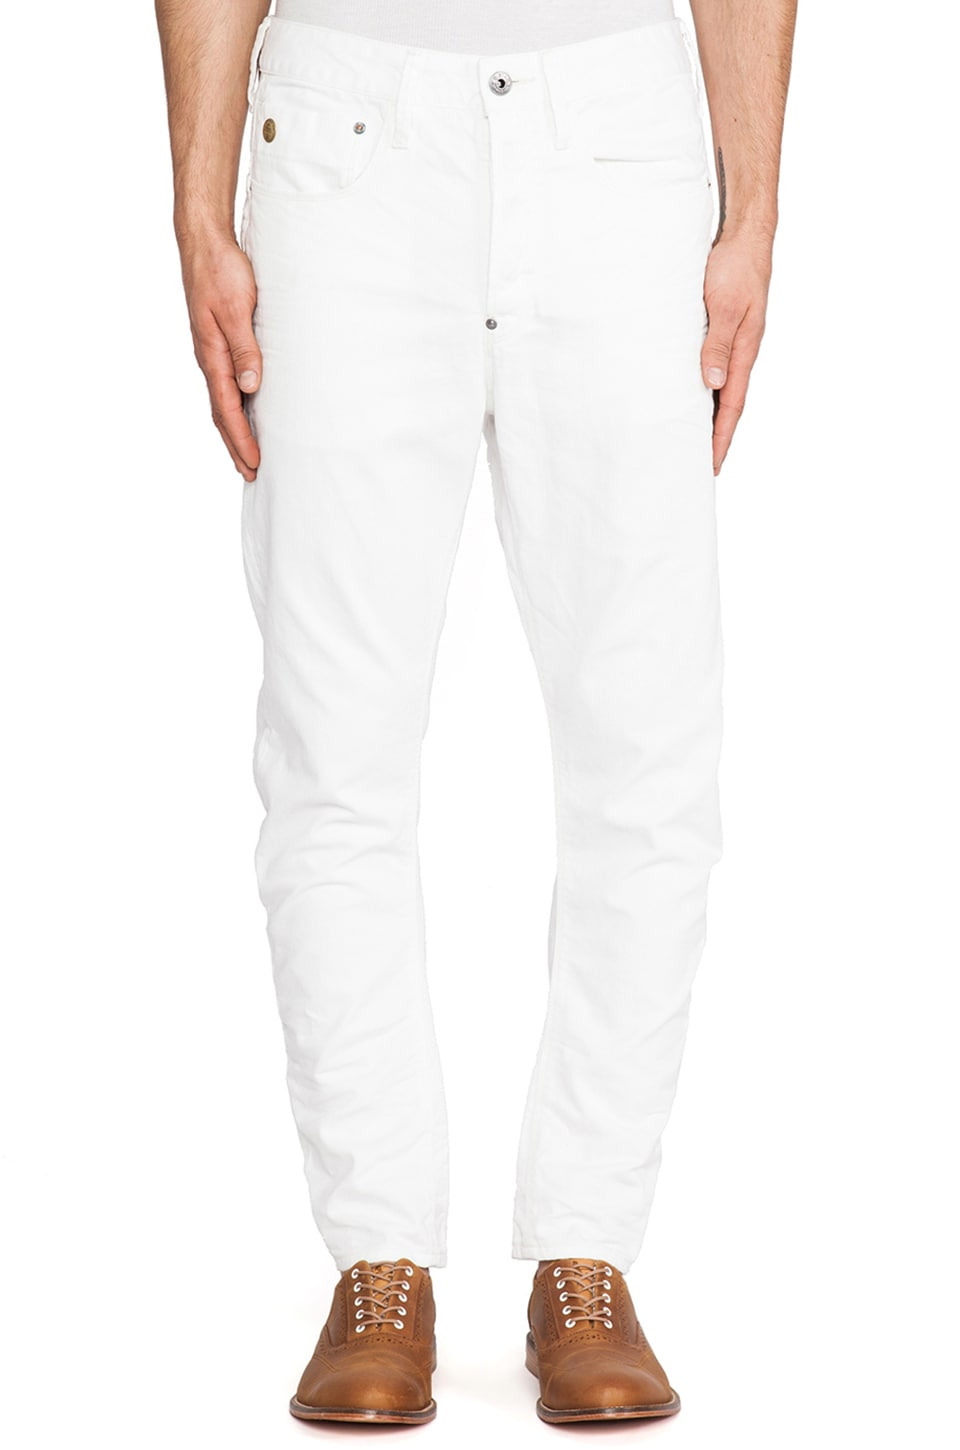 G-Star Type C Loose Tapered Format White Denim in 3D Raw